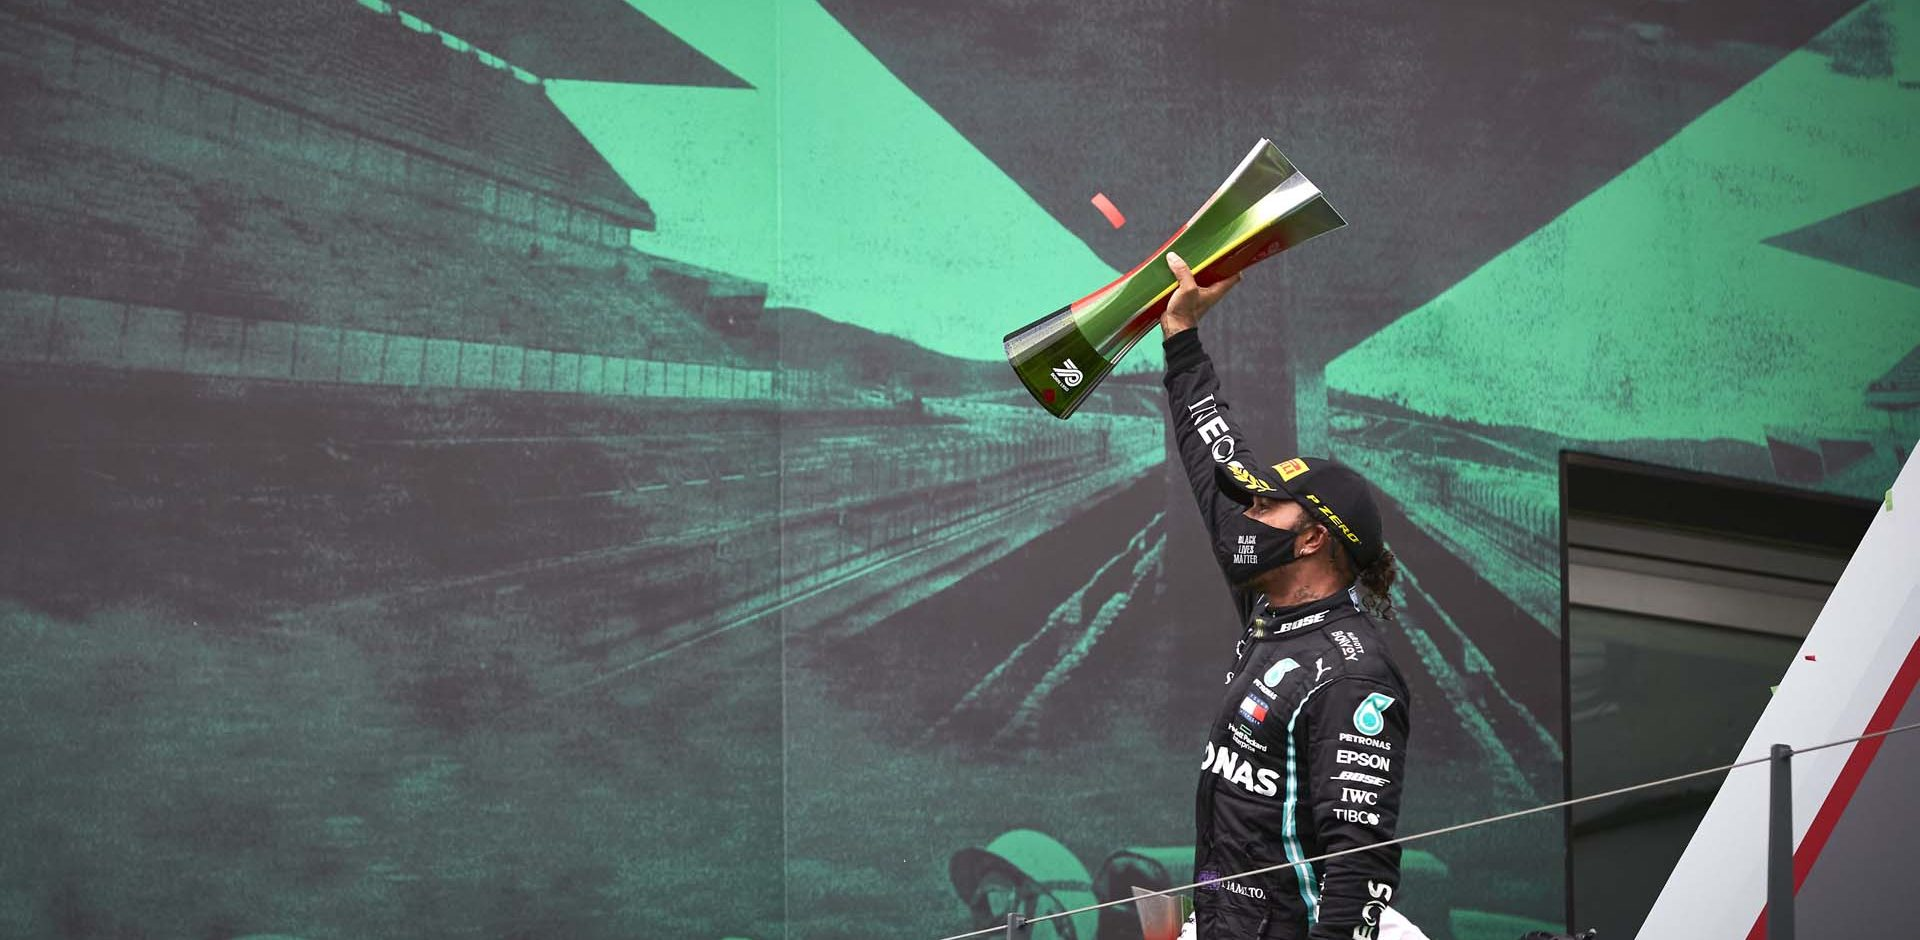 2020 Portuguese Grand Prix, Sunday - Steve Etherington Lewis Hamilton Mercedes